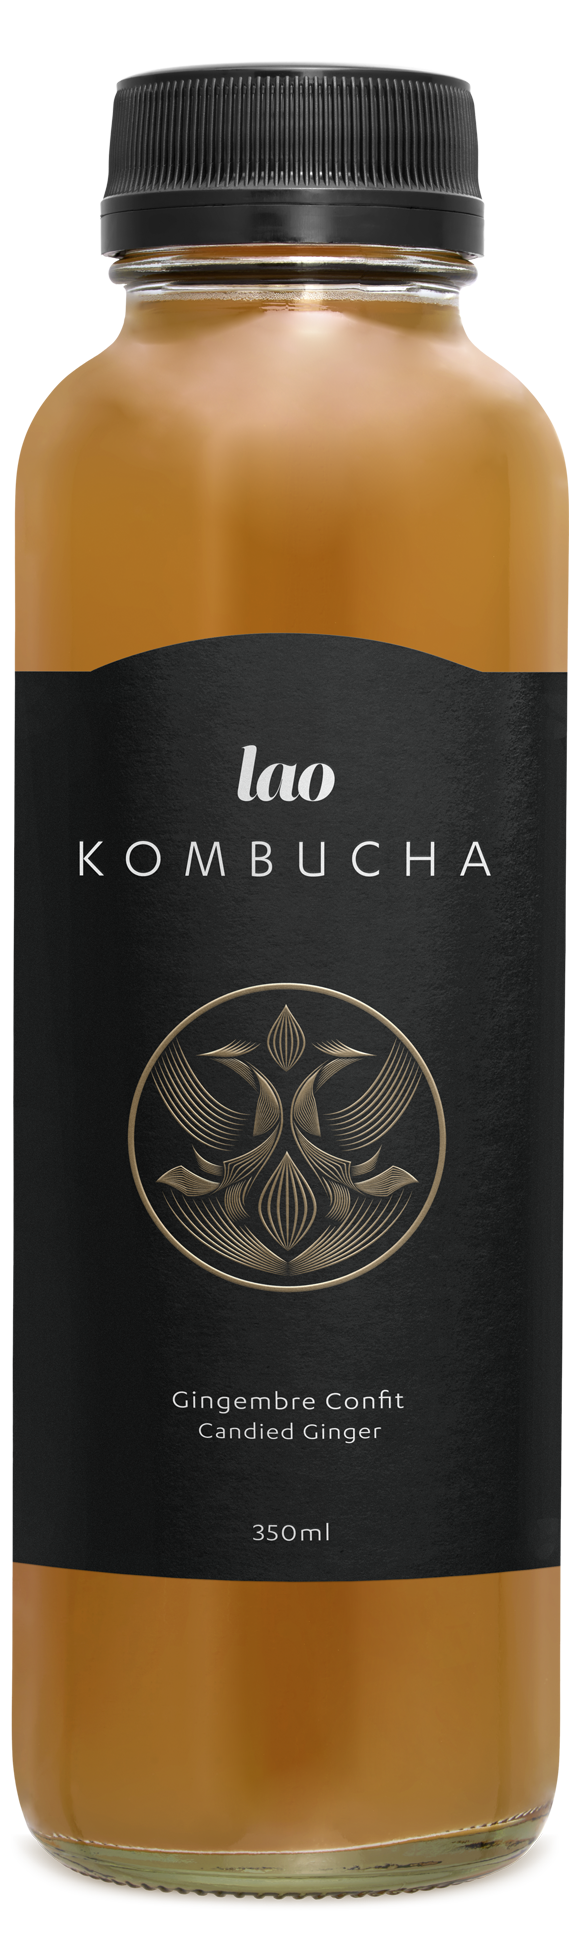 Ginger kombucha, low sugar, only 1g per bottle, Keto, Ketogenic, Available in Quebec, Montreal, Canada